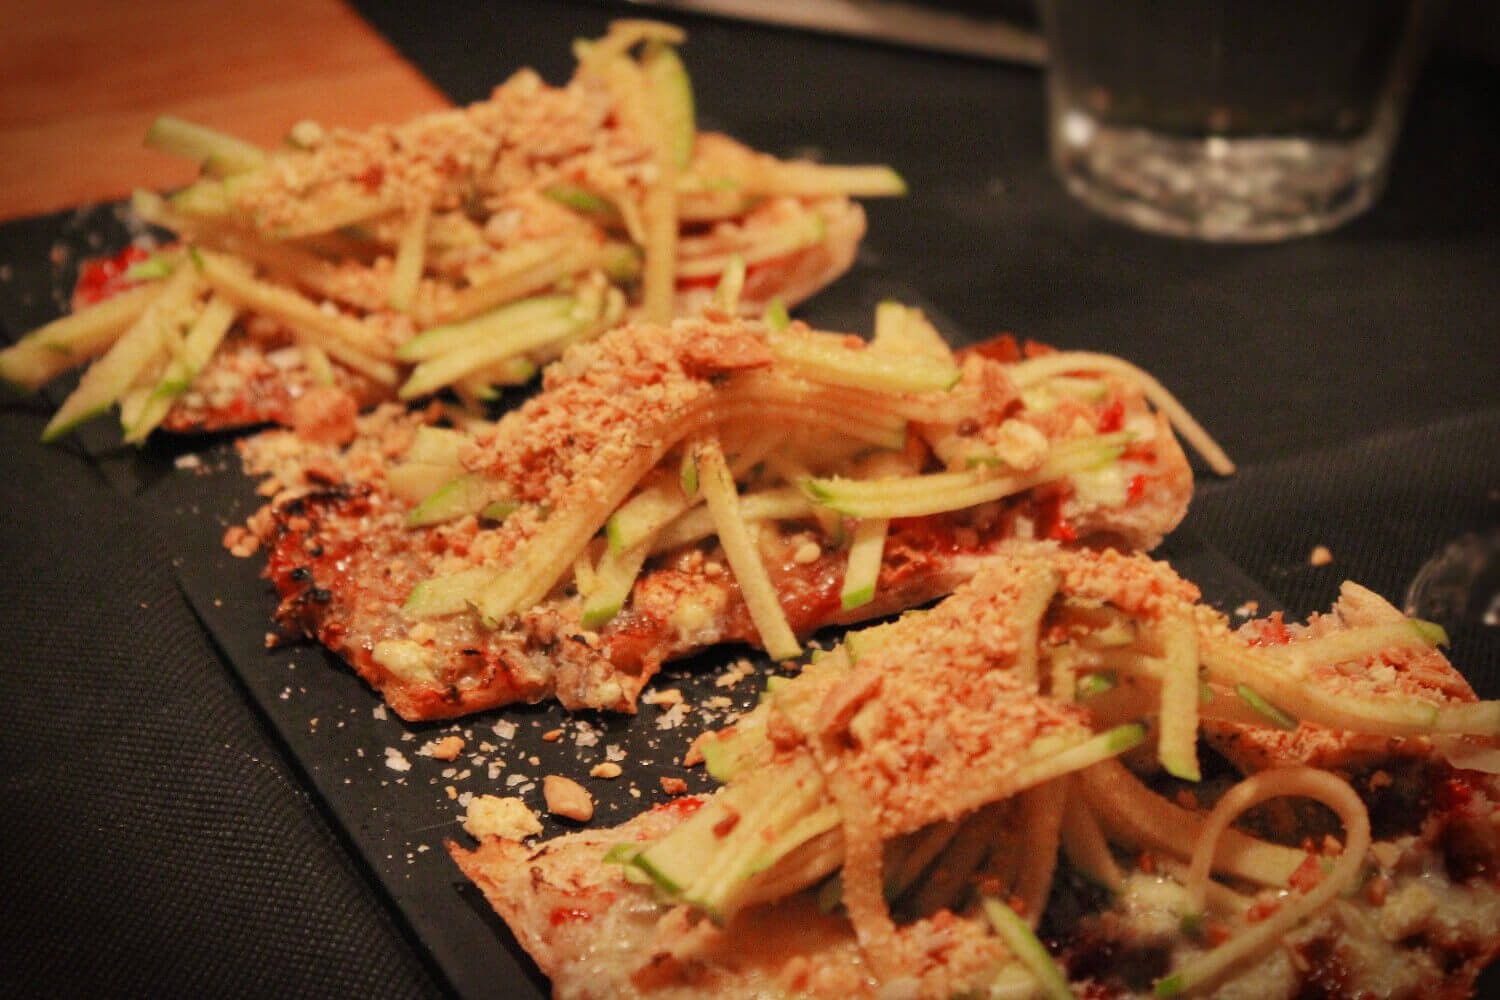 Crunchy tostadas in a Catalan wine bar in Barcelona on the Devour Barcelona wine tasting and tapas tour.Crunchy tostadas in a Catalan wine bar in Barcelona on the Devour Barcelona wine tasting and tapas tour.